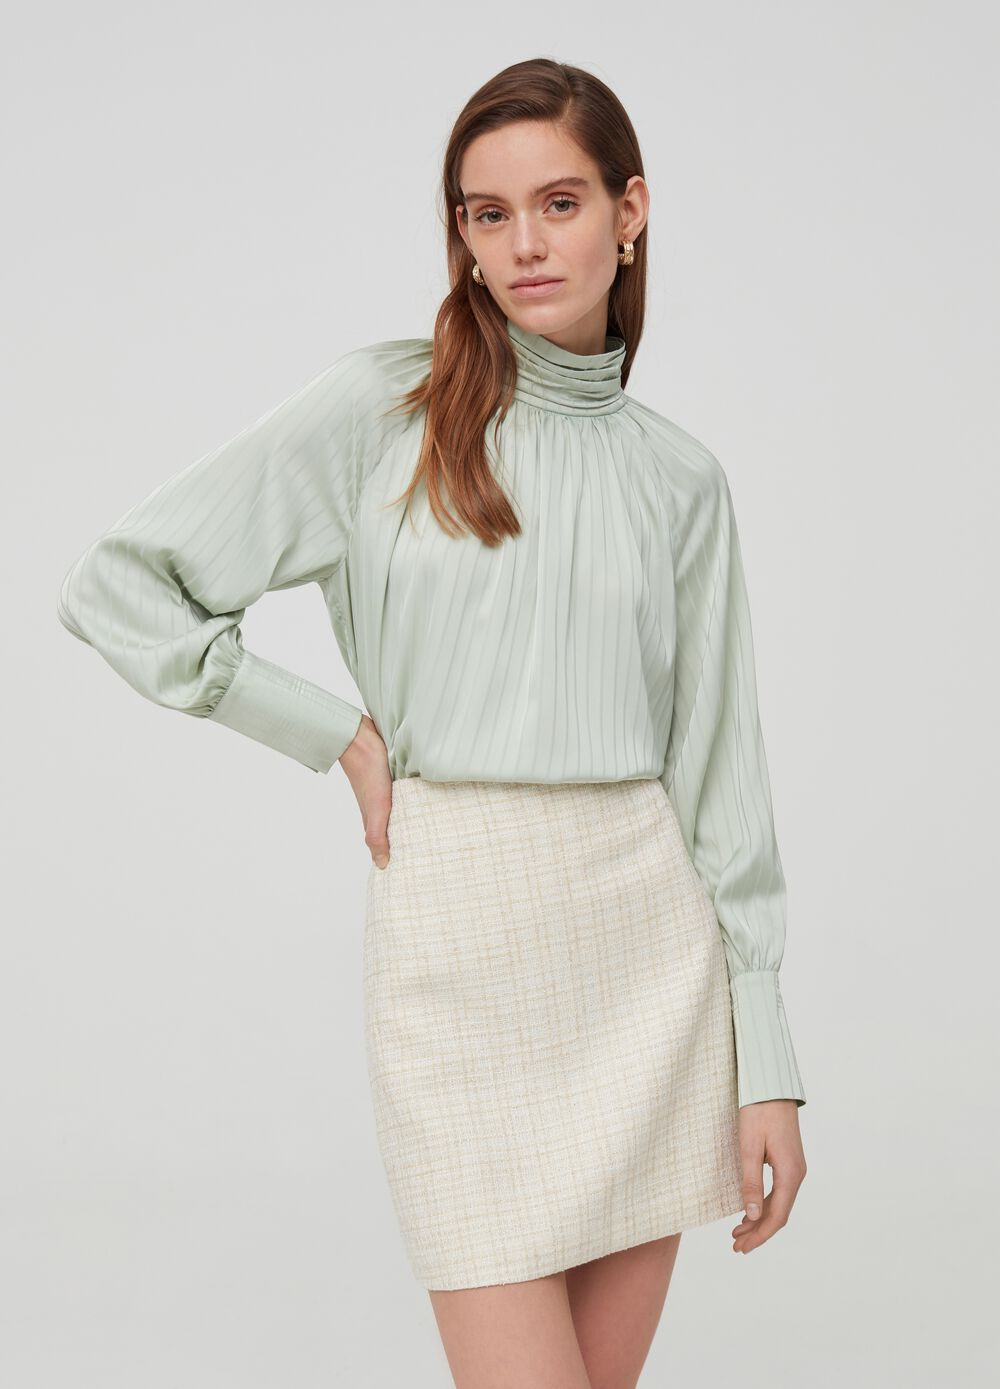 Blouse with striped high neck